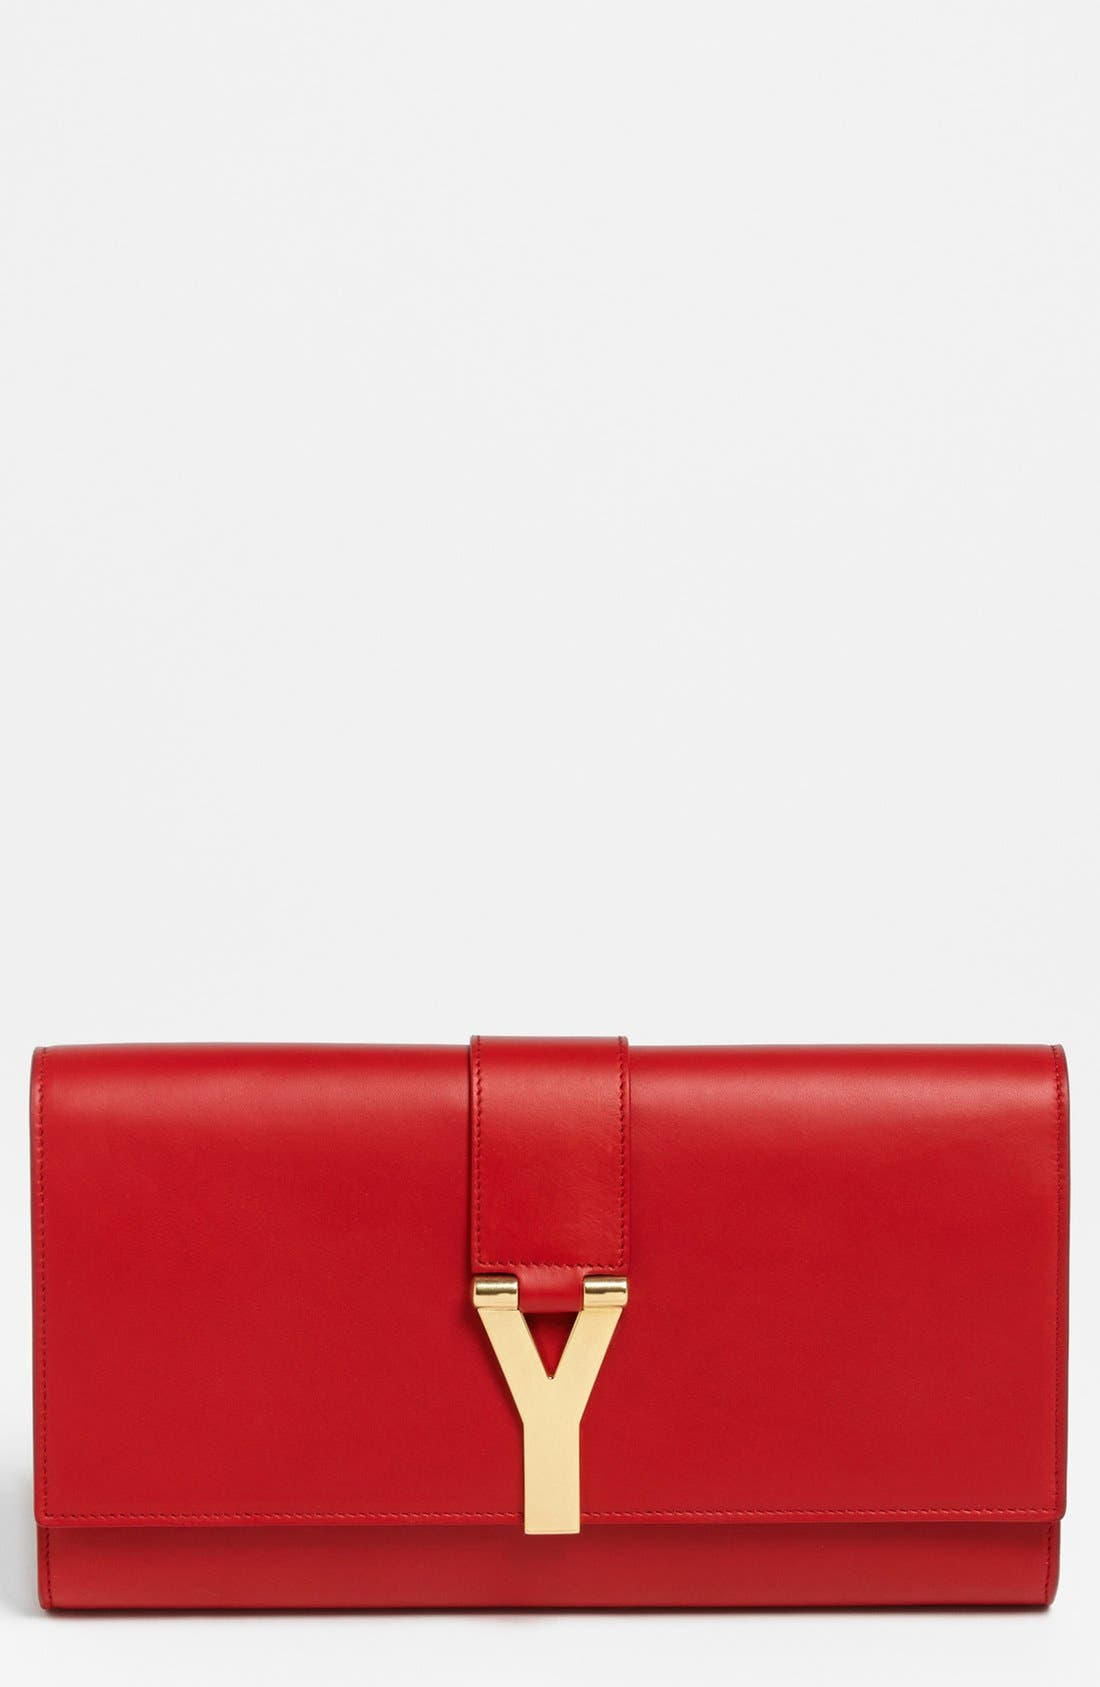 Main Image - Saint Laurent 'Y' Leather Clutch